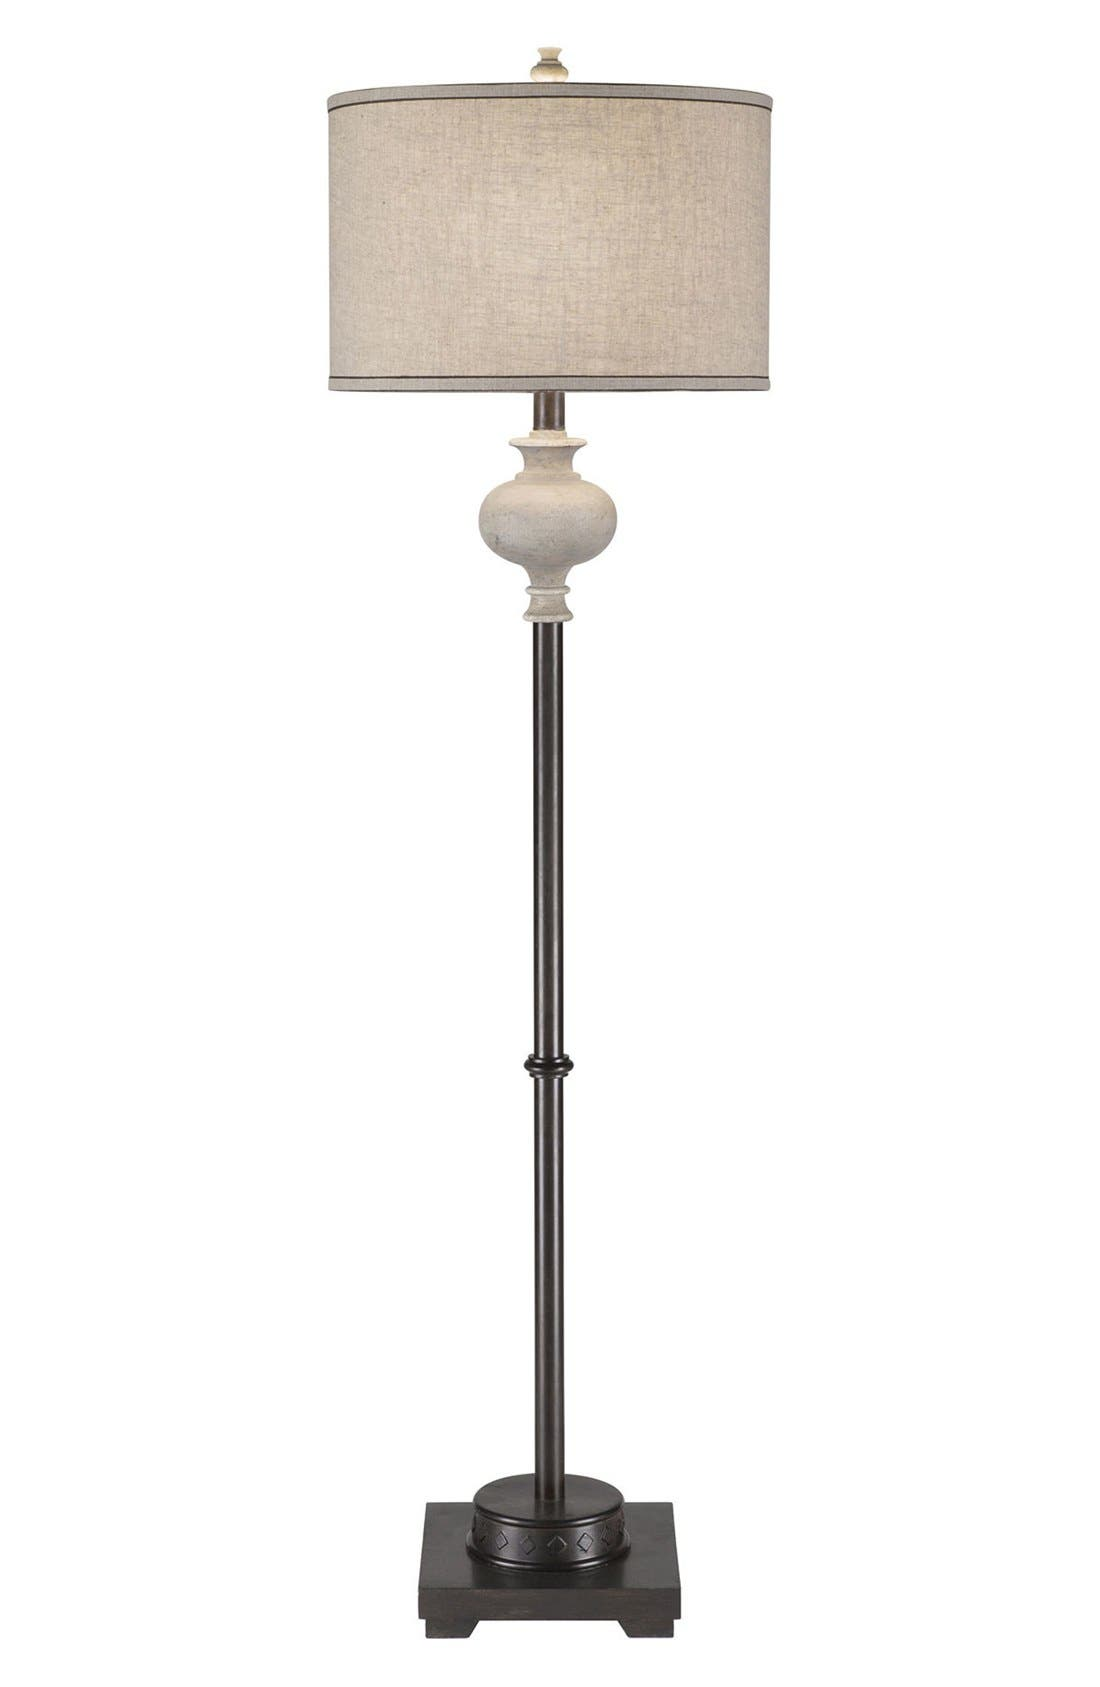 Main Image - JAlexander Whitewash & Bronze Floor Lamp